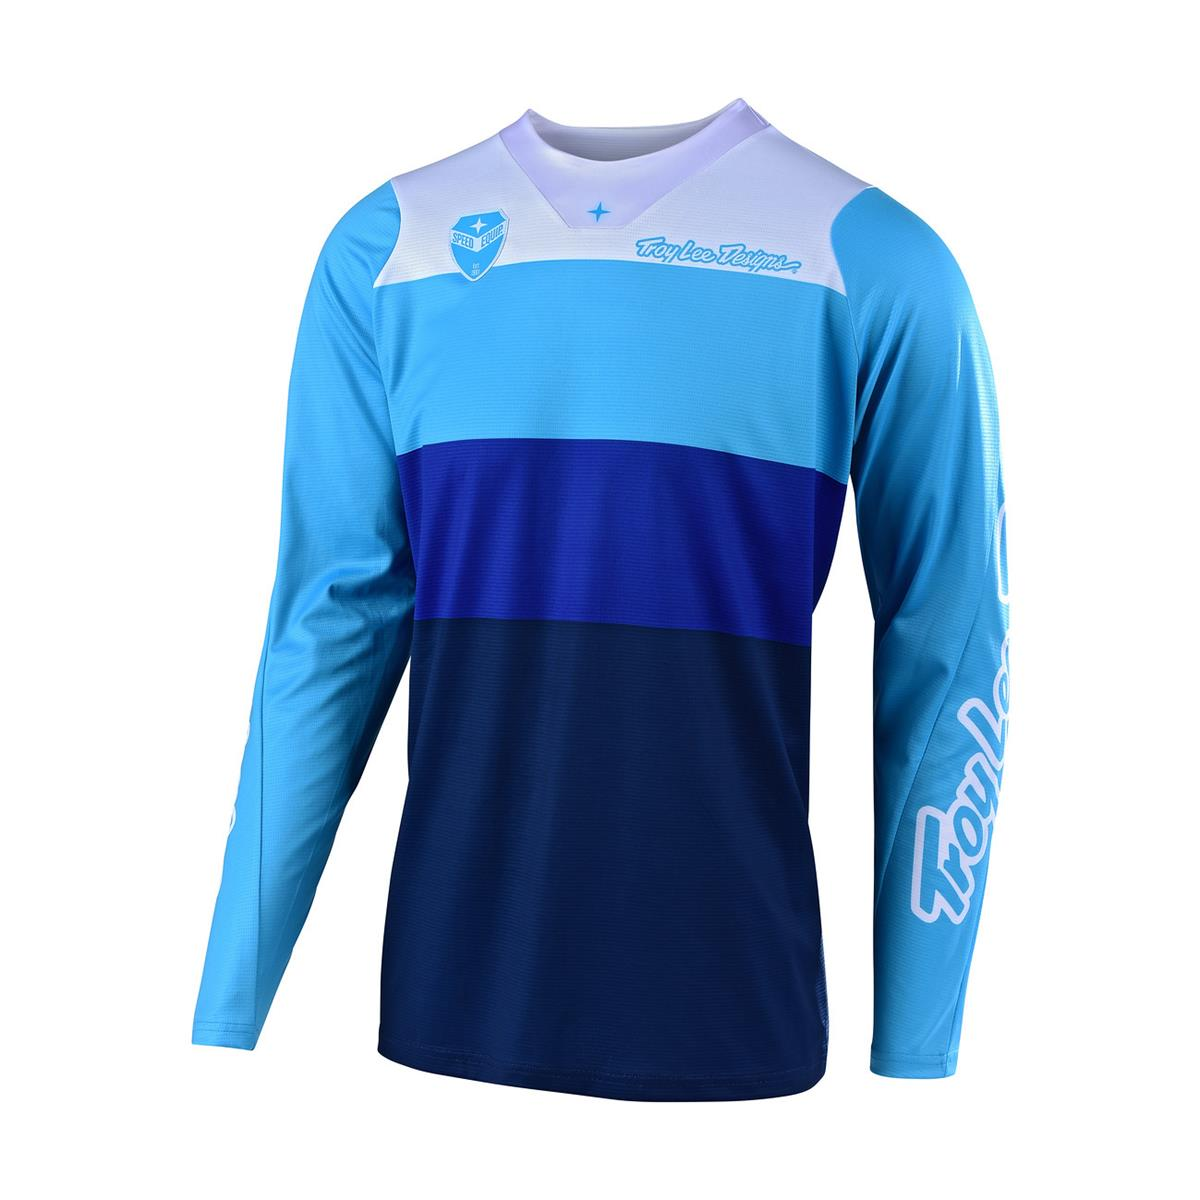 Troy Lee Designs Jersey SE Beta - Blau